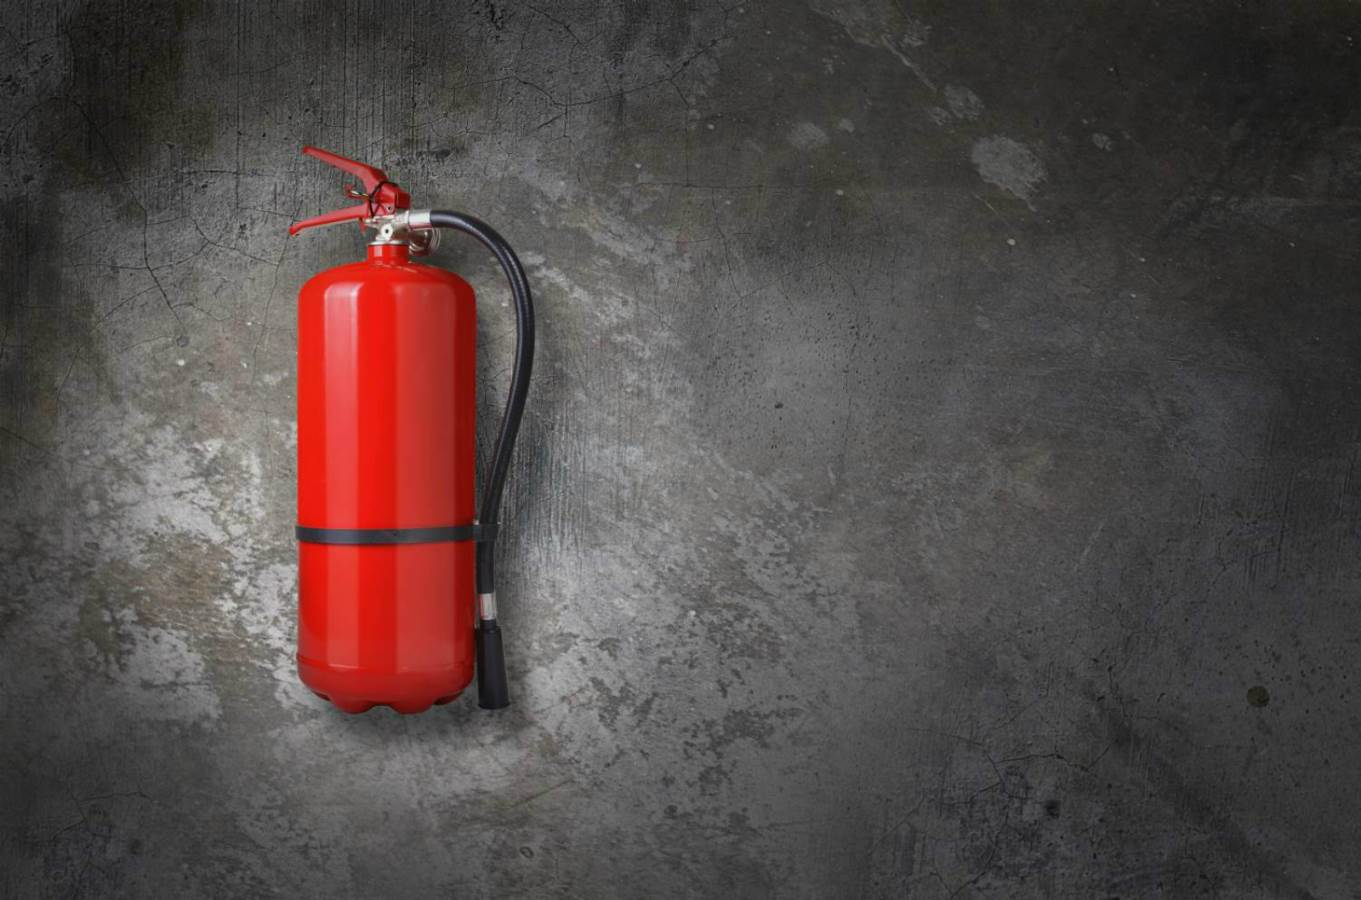 BullEx Digital Safety Makes Hot Product Out of Fire Extinguisher Training